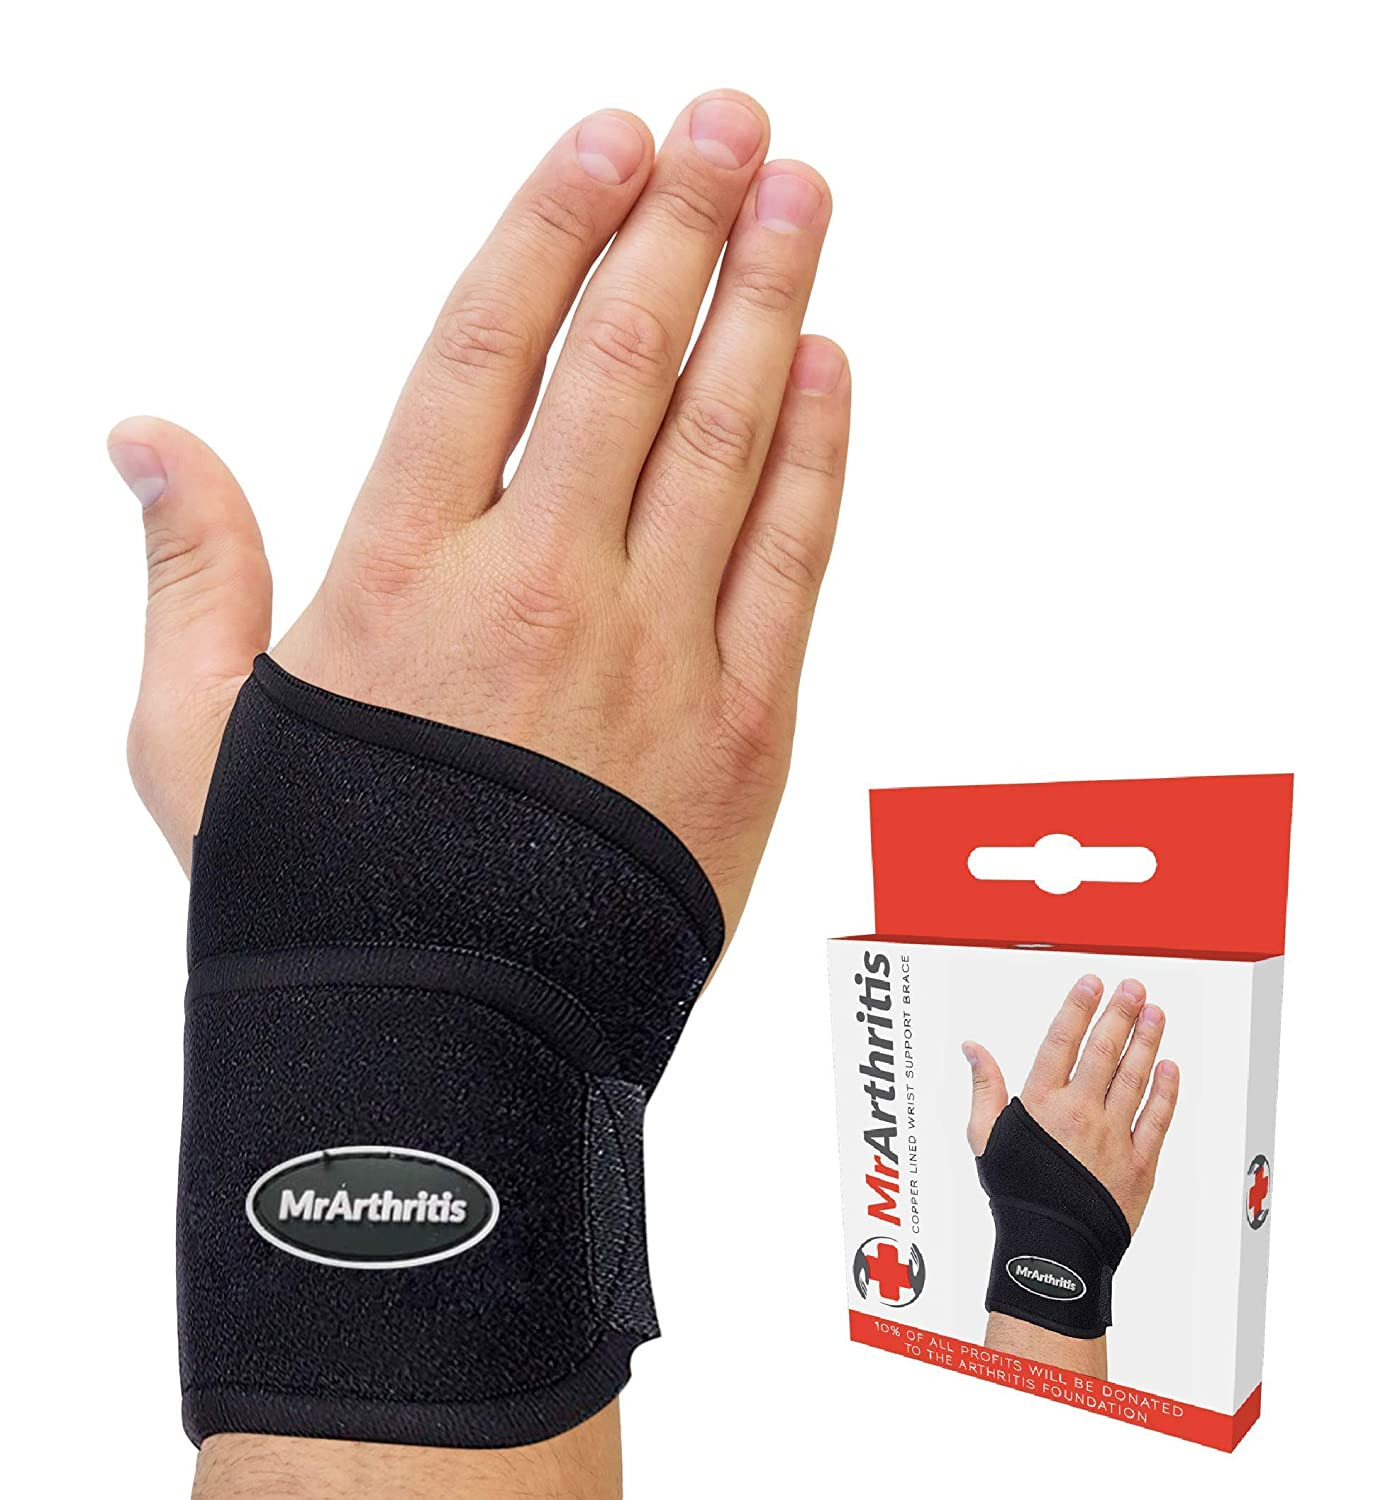 Doctor Developed Wrist Support | Copper Lined Brace with adjustable Strap - Doctor Handbook | Compression Wrist Brace for Arthritis, Carpal Tunnel, Treat Joint Pain | Hand Support to Prevent Sports Injury: Industrial & Scientific